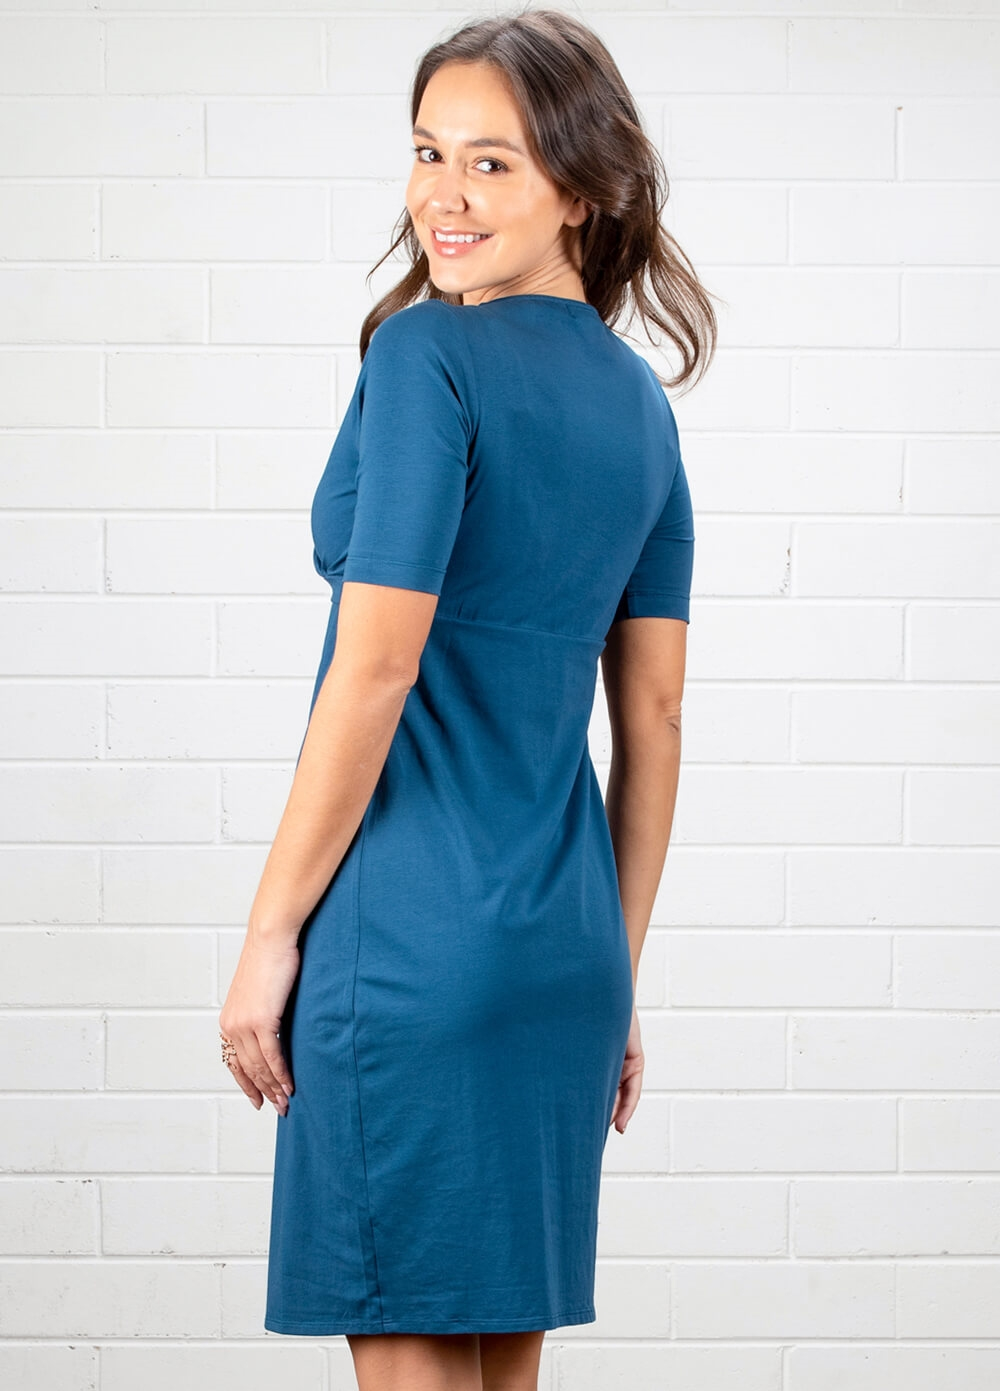 Ellen Teal Blue Breastfeeding Wrap Dress by Dote Nursingwear